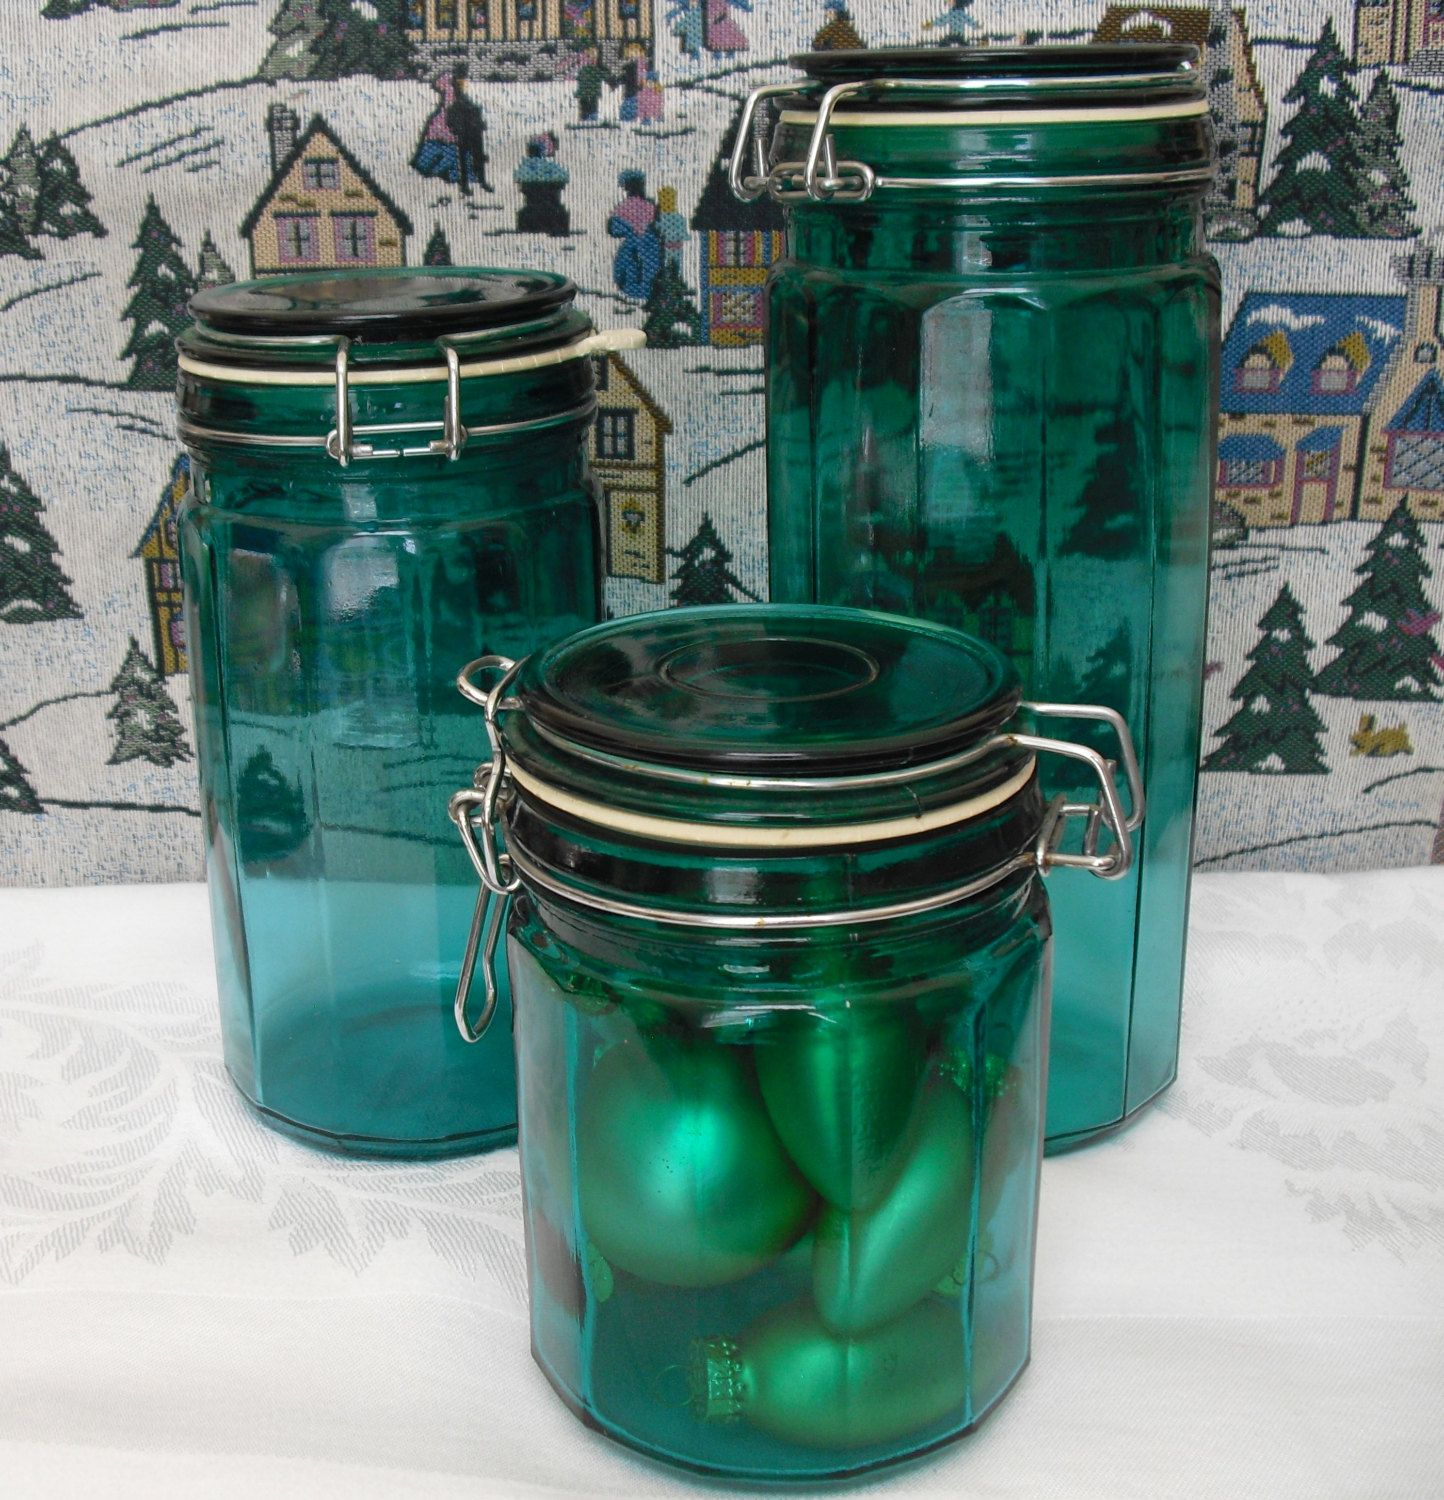 Vintage Italglass Green Glass 3 Piece Canister Set With Metal Clasp ...